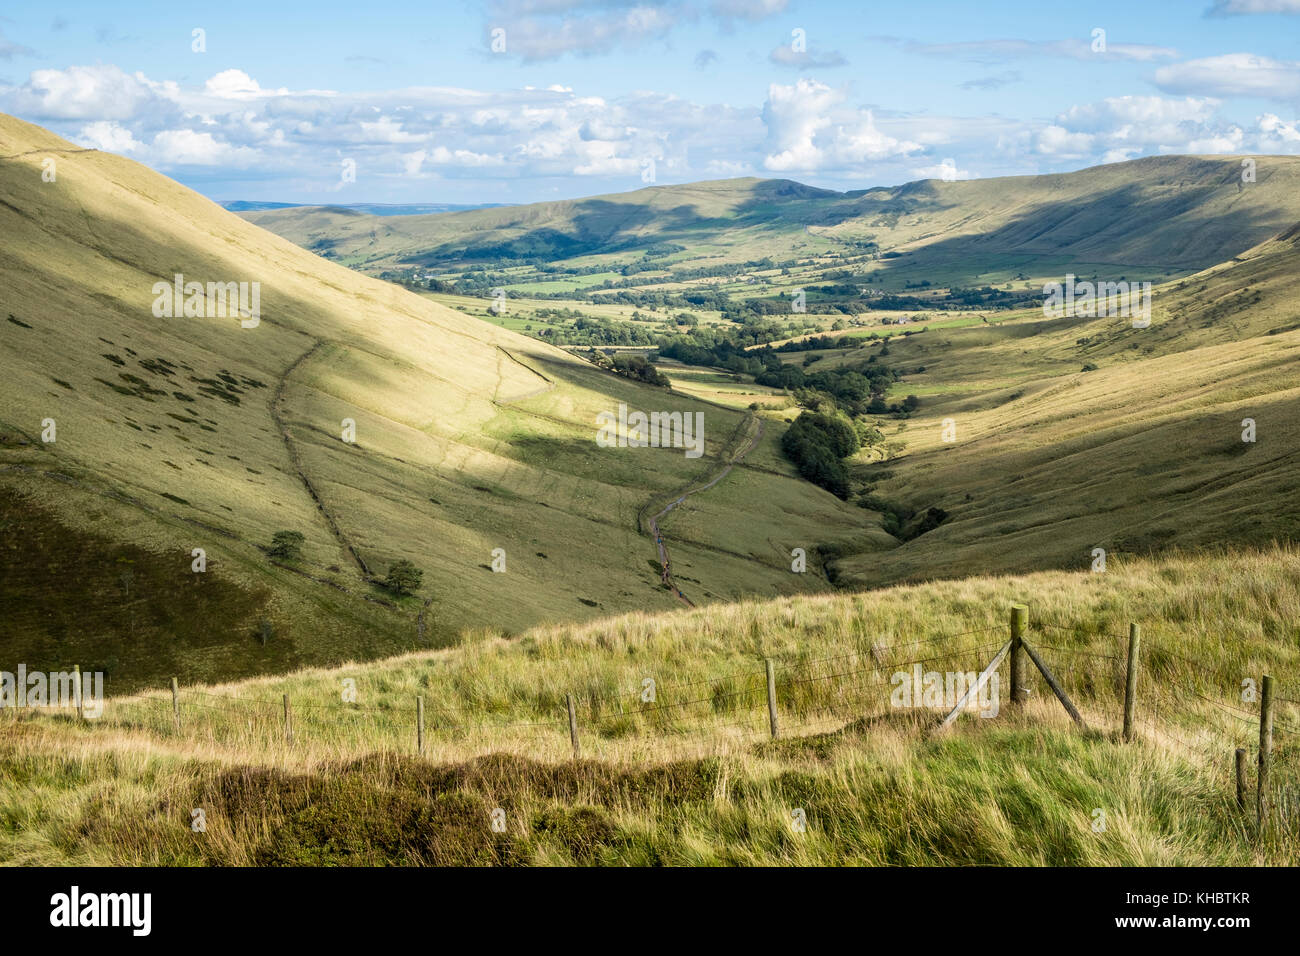 English countryside in the Vale of Edale, Derbyshire, Peak District National Park, England, UK - Stock Image